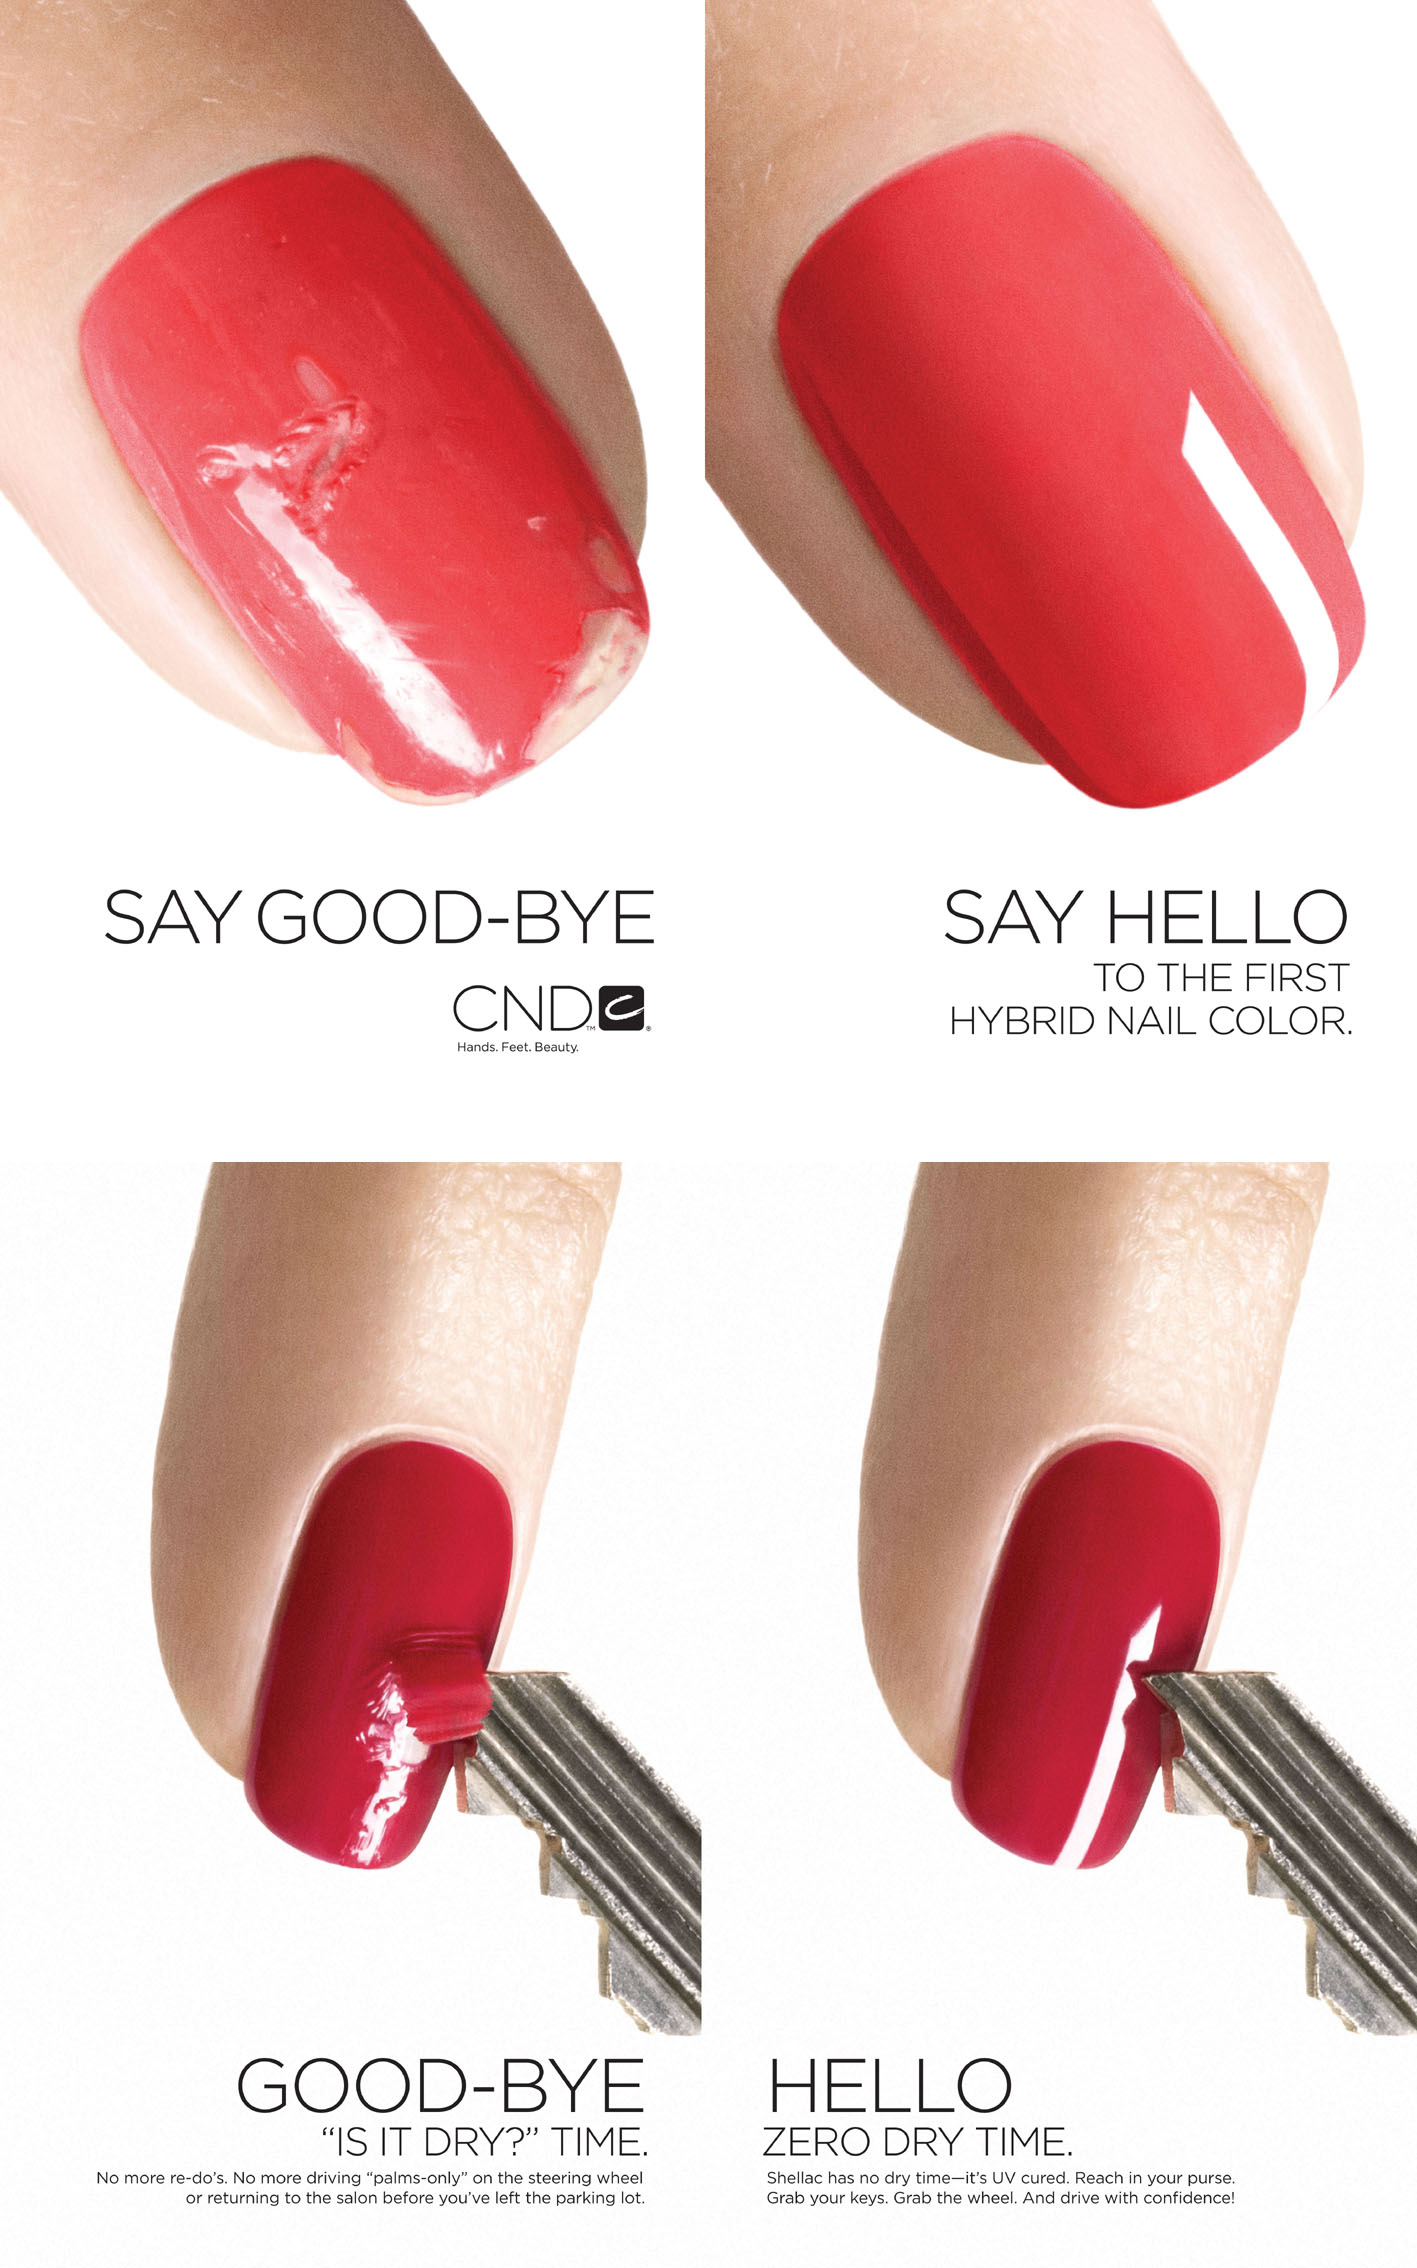 Price for shellac manicure - New orleans plantations tours